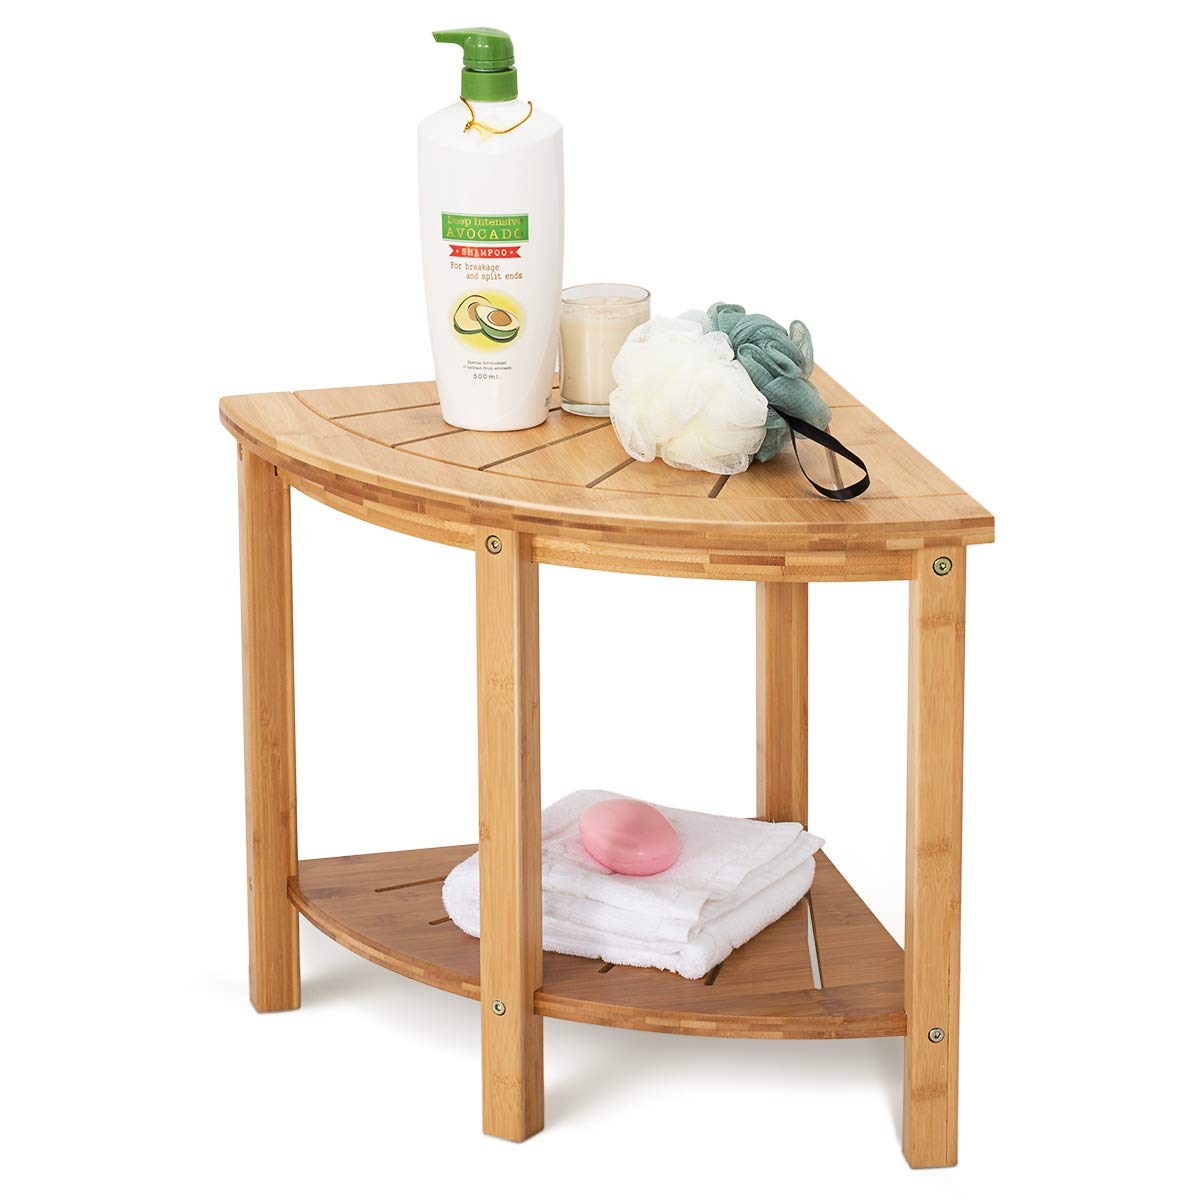 OasisSpace Corner Shower Stool, Bamboo Shower Bench with Storage Shelf, Wooden Spa Bath Organizer Seat, Perfect for Indoor or Outdoor by OasisSpace